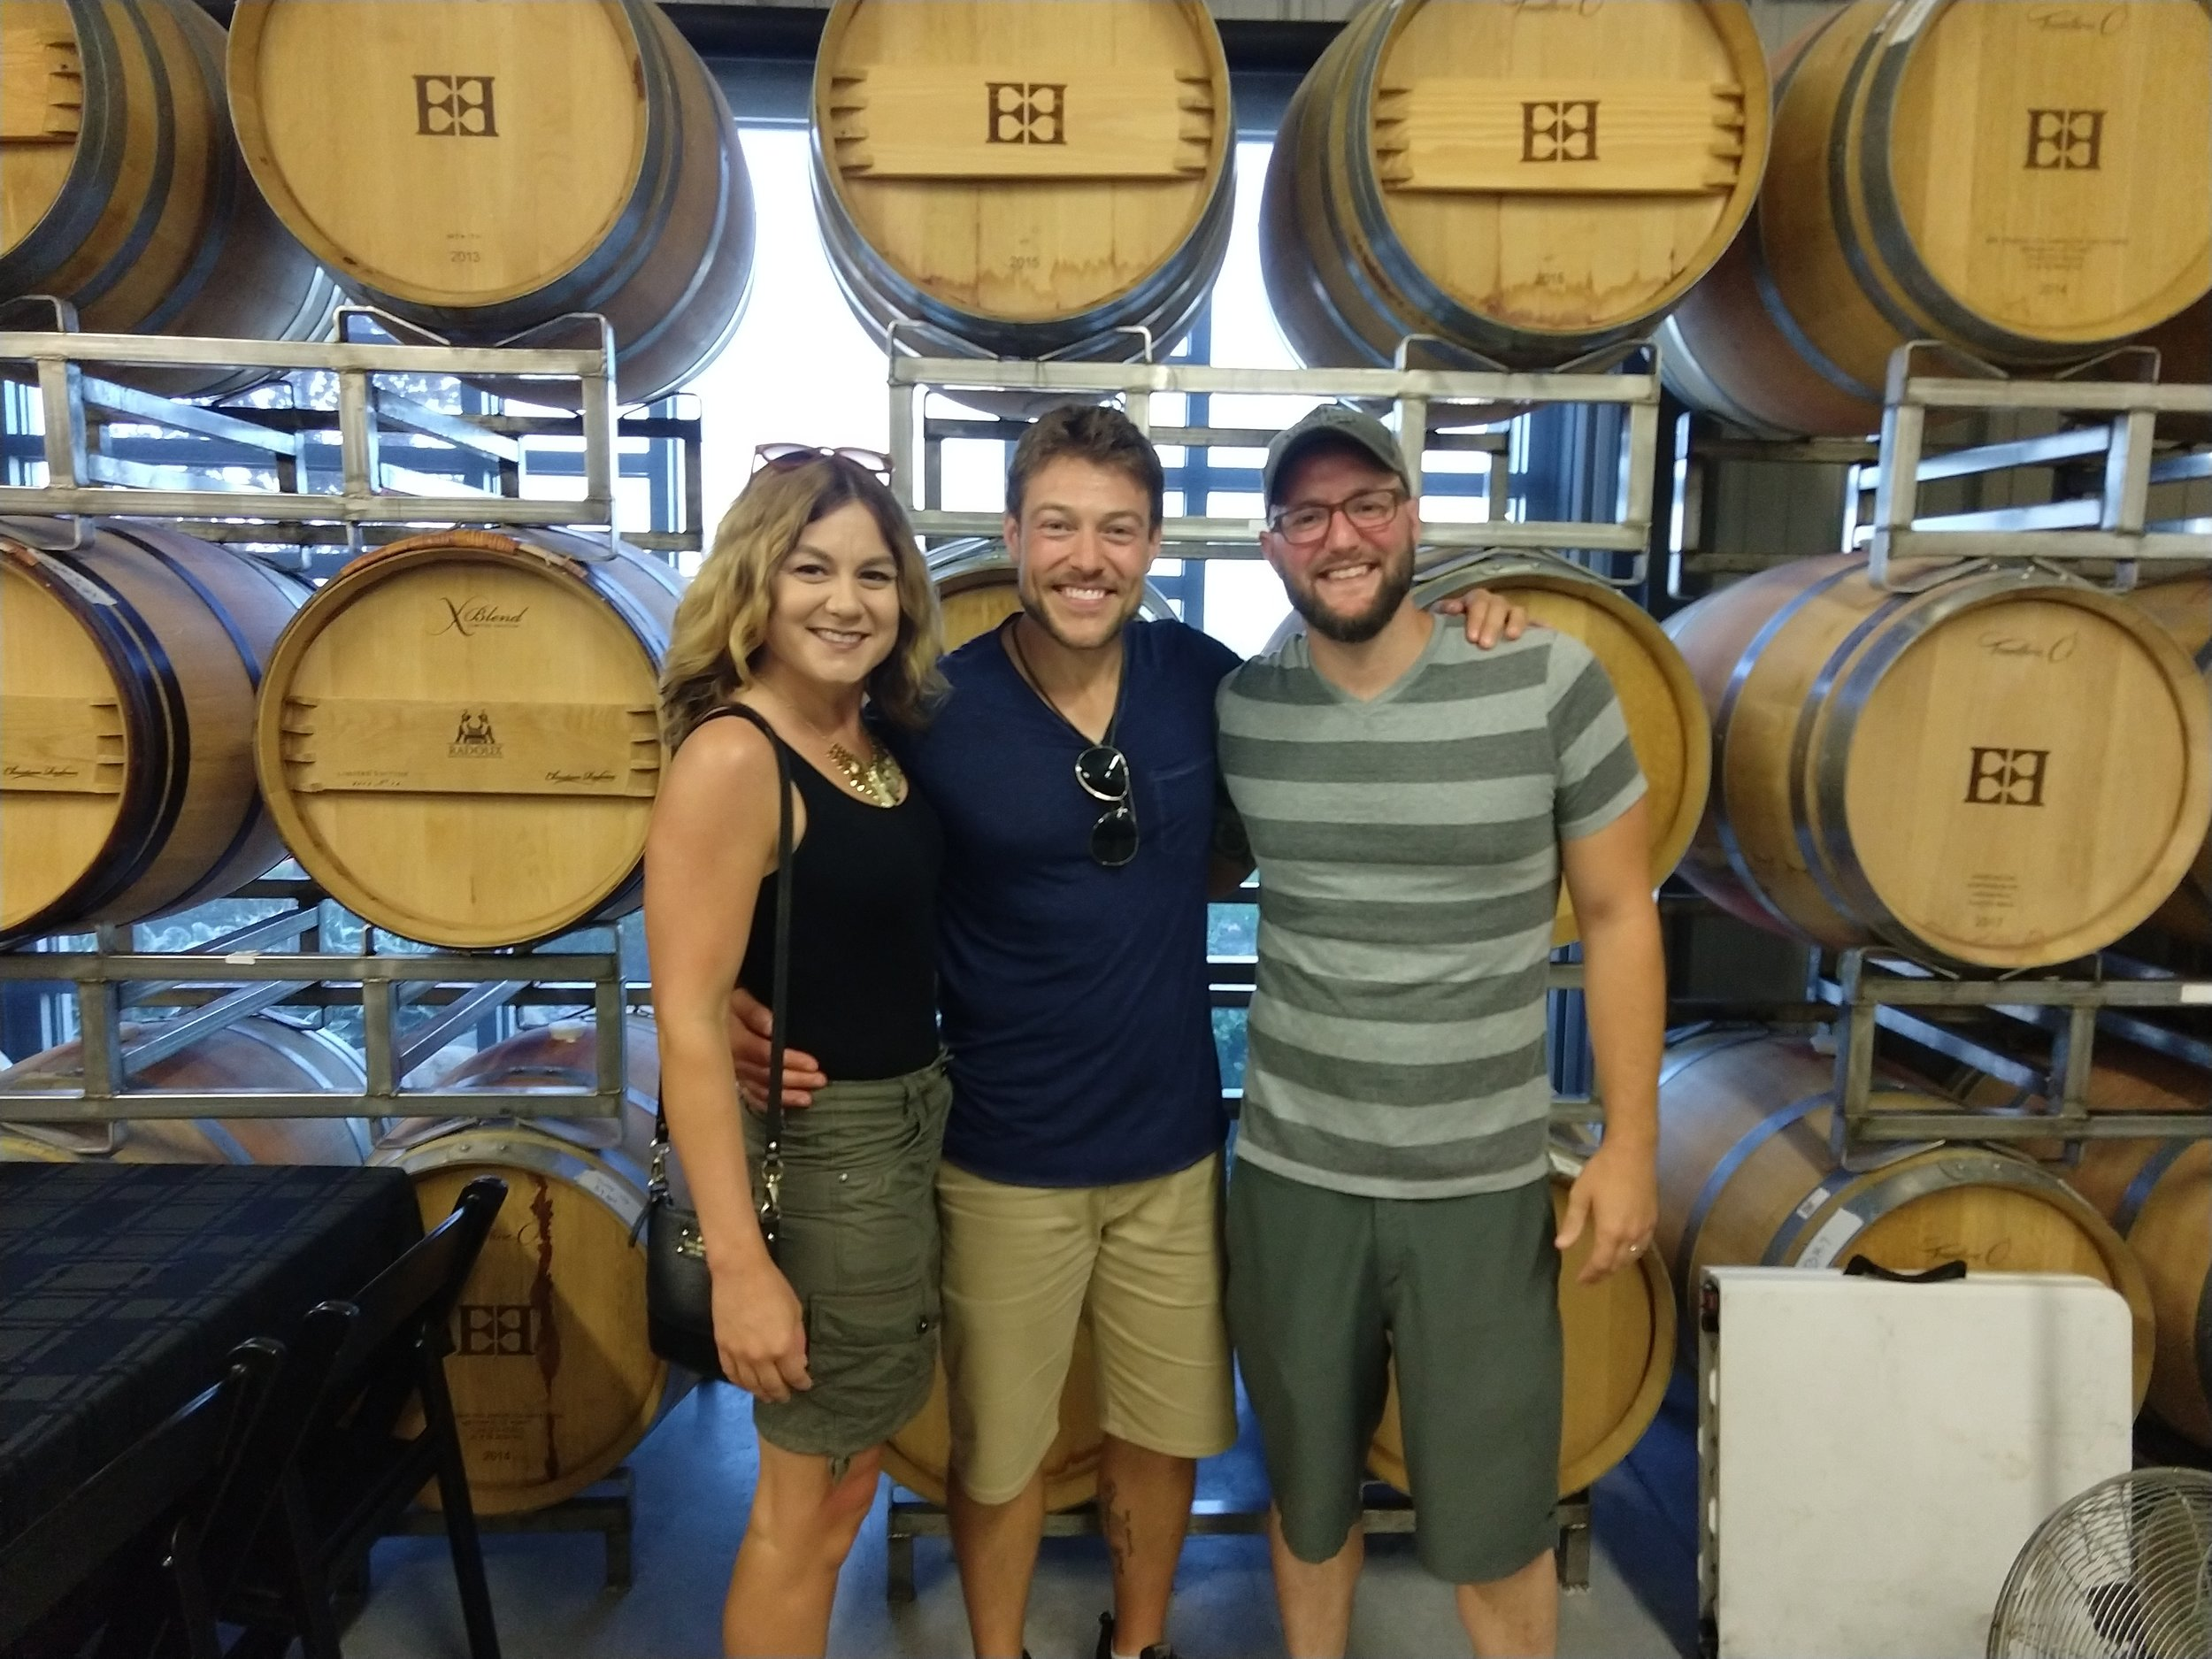 Alicia Pyle, Dennis Junk, and Andy Sheer at Two-EEs Winery